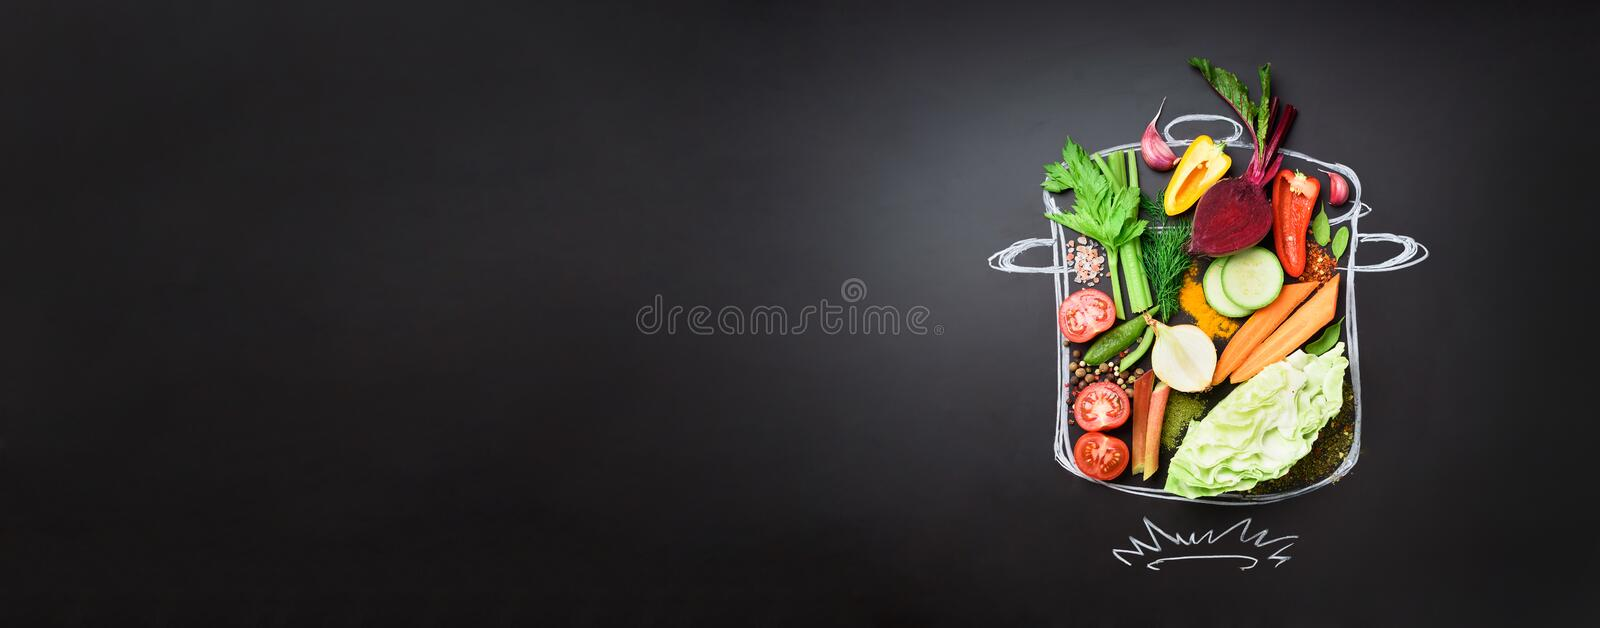 Food ingredients for blending creamy soup on painted stewpan over black chalkboard. Top view with copy space. Organic. Vegetables, spices, herbs. Vegetarian royalty free stock photos